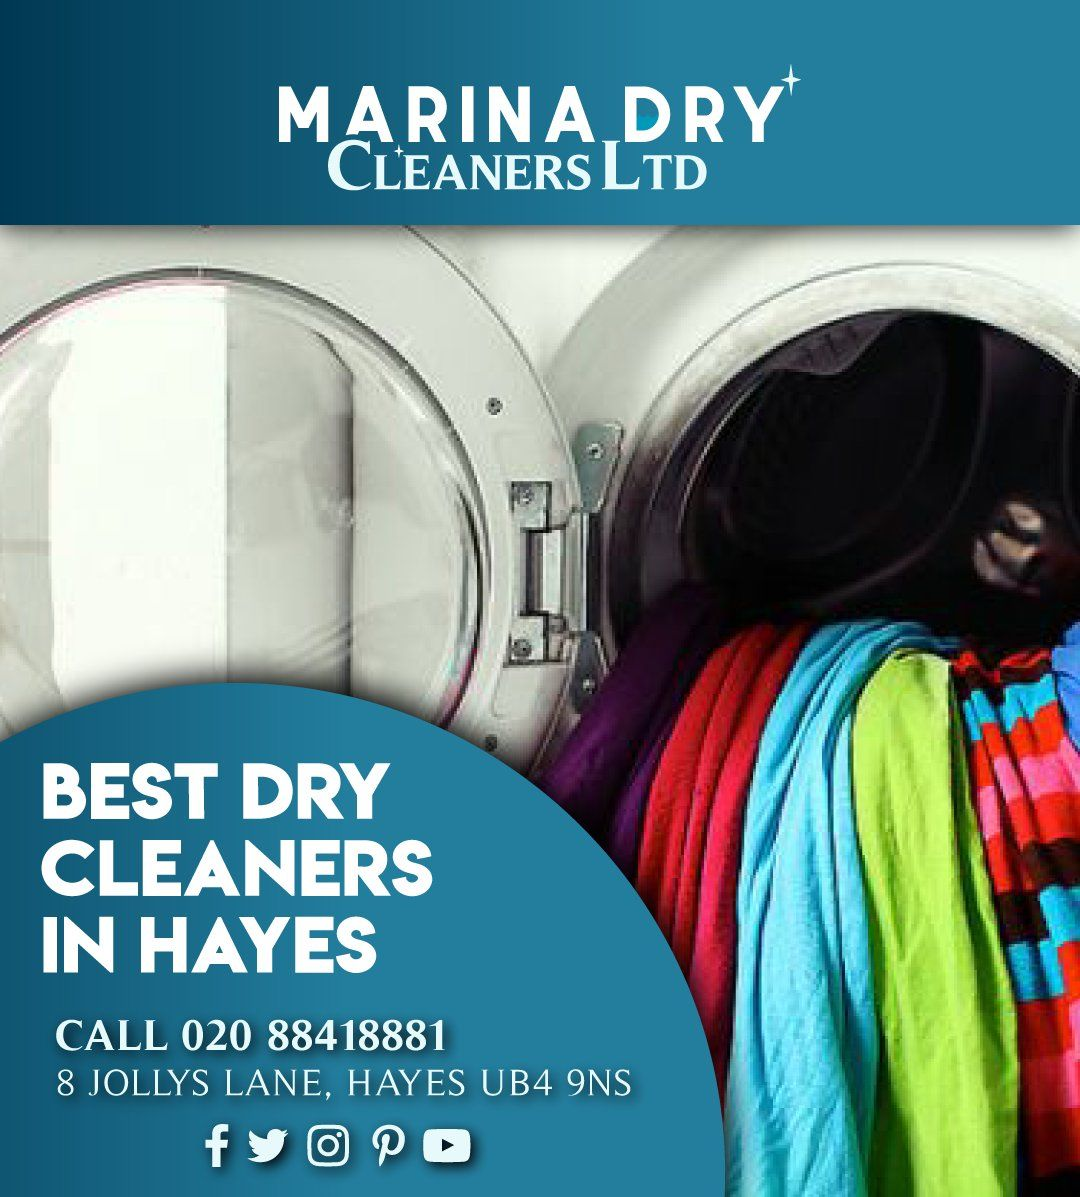 Best Dry Cleaners In Hayes Call Us On 020 8841 8881 Dry